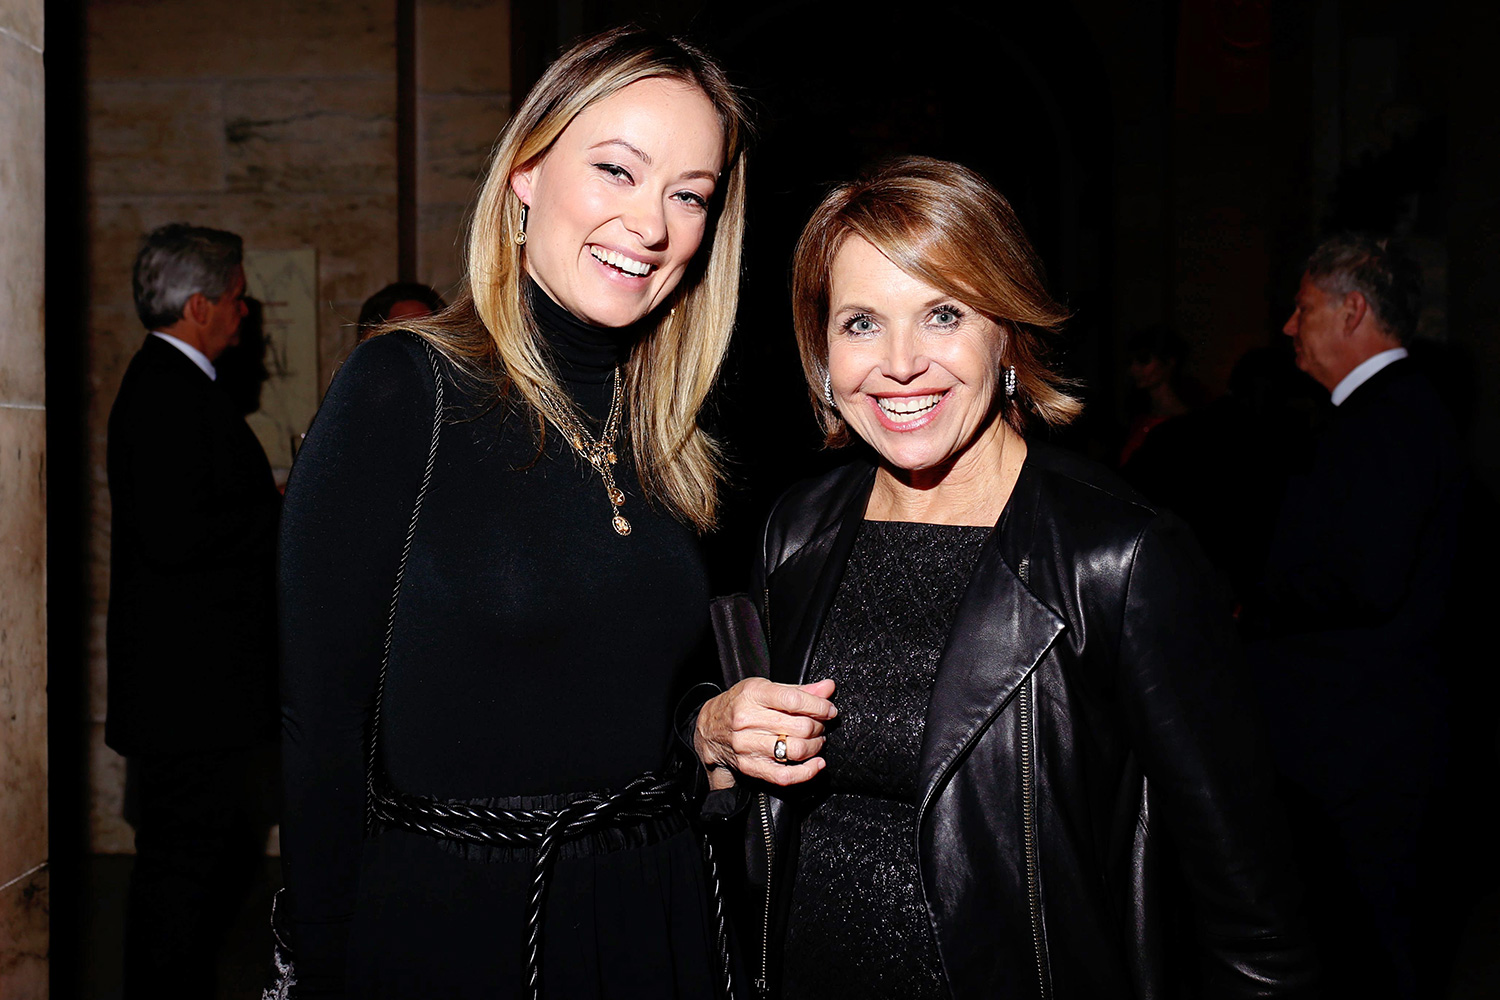 Olivia Wilde and Katie Couric Berggruen Prize for Philosophy and Culture gala, Inside, New York Public Library, USA - 16 Dec 2019